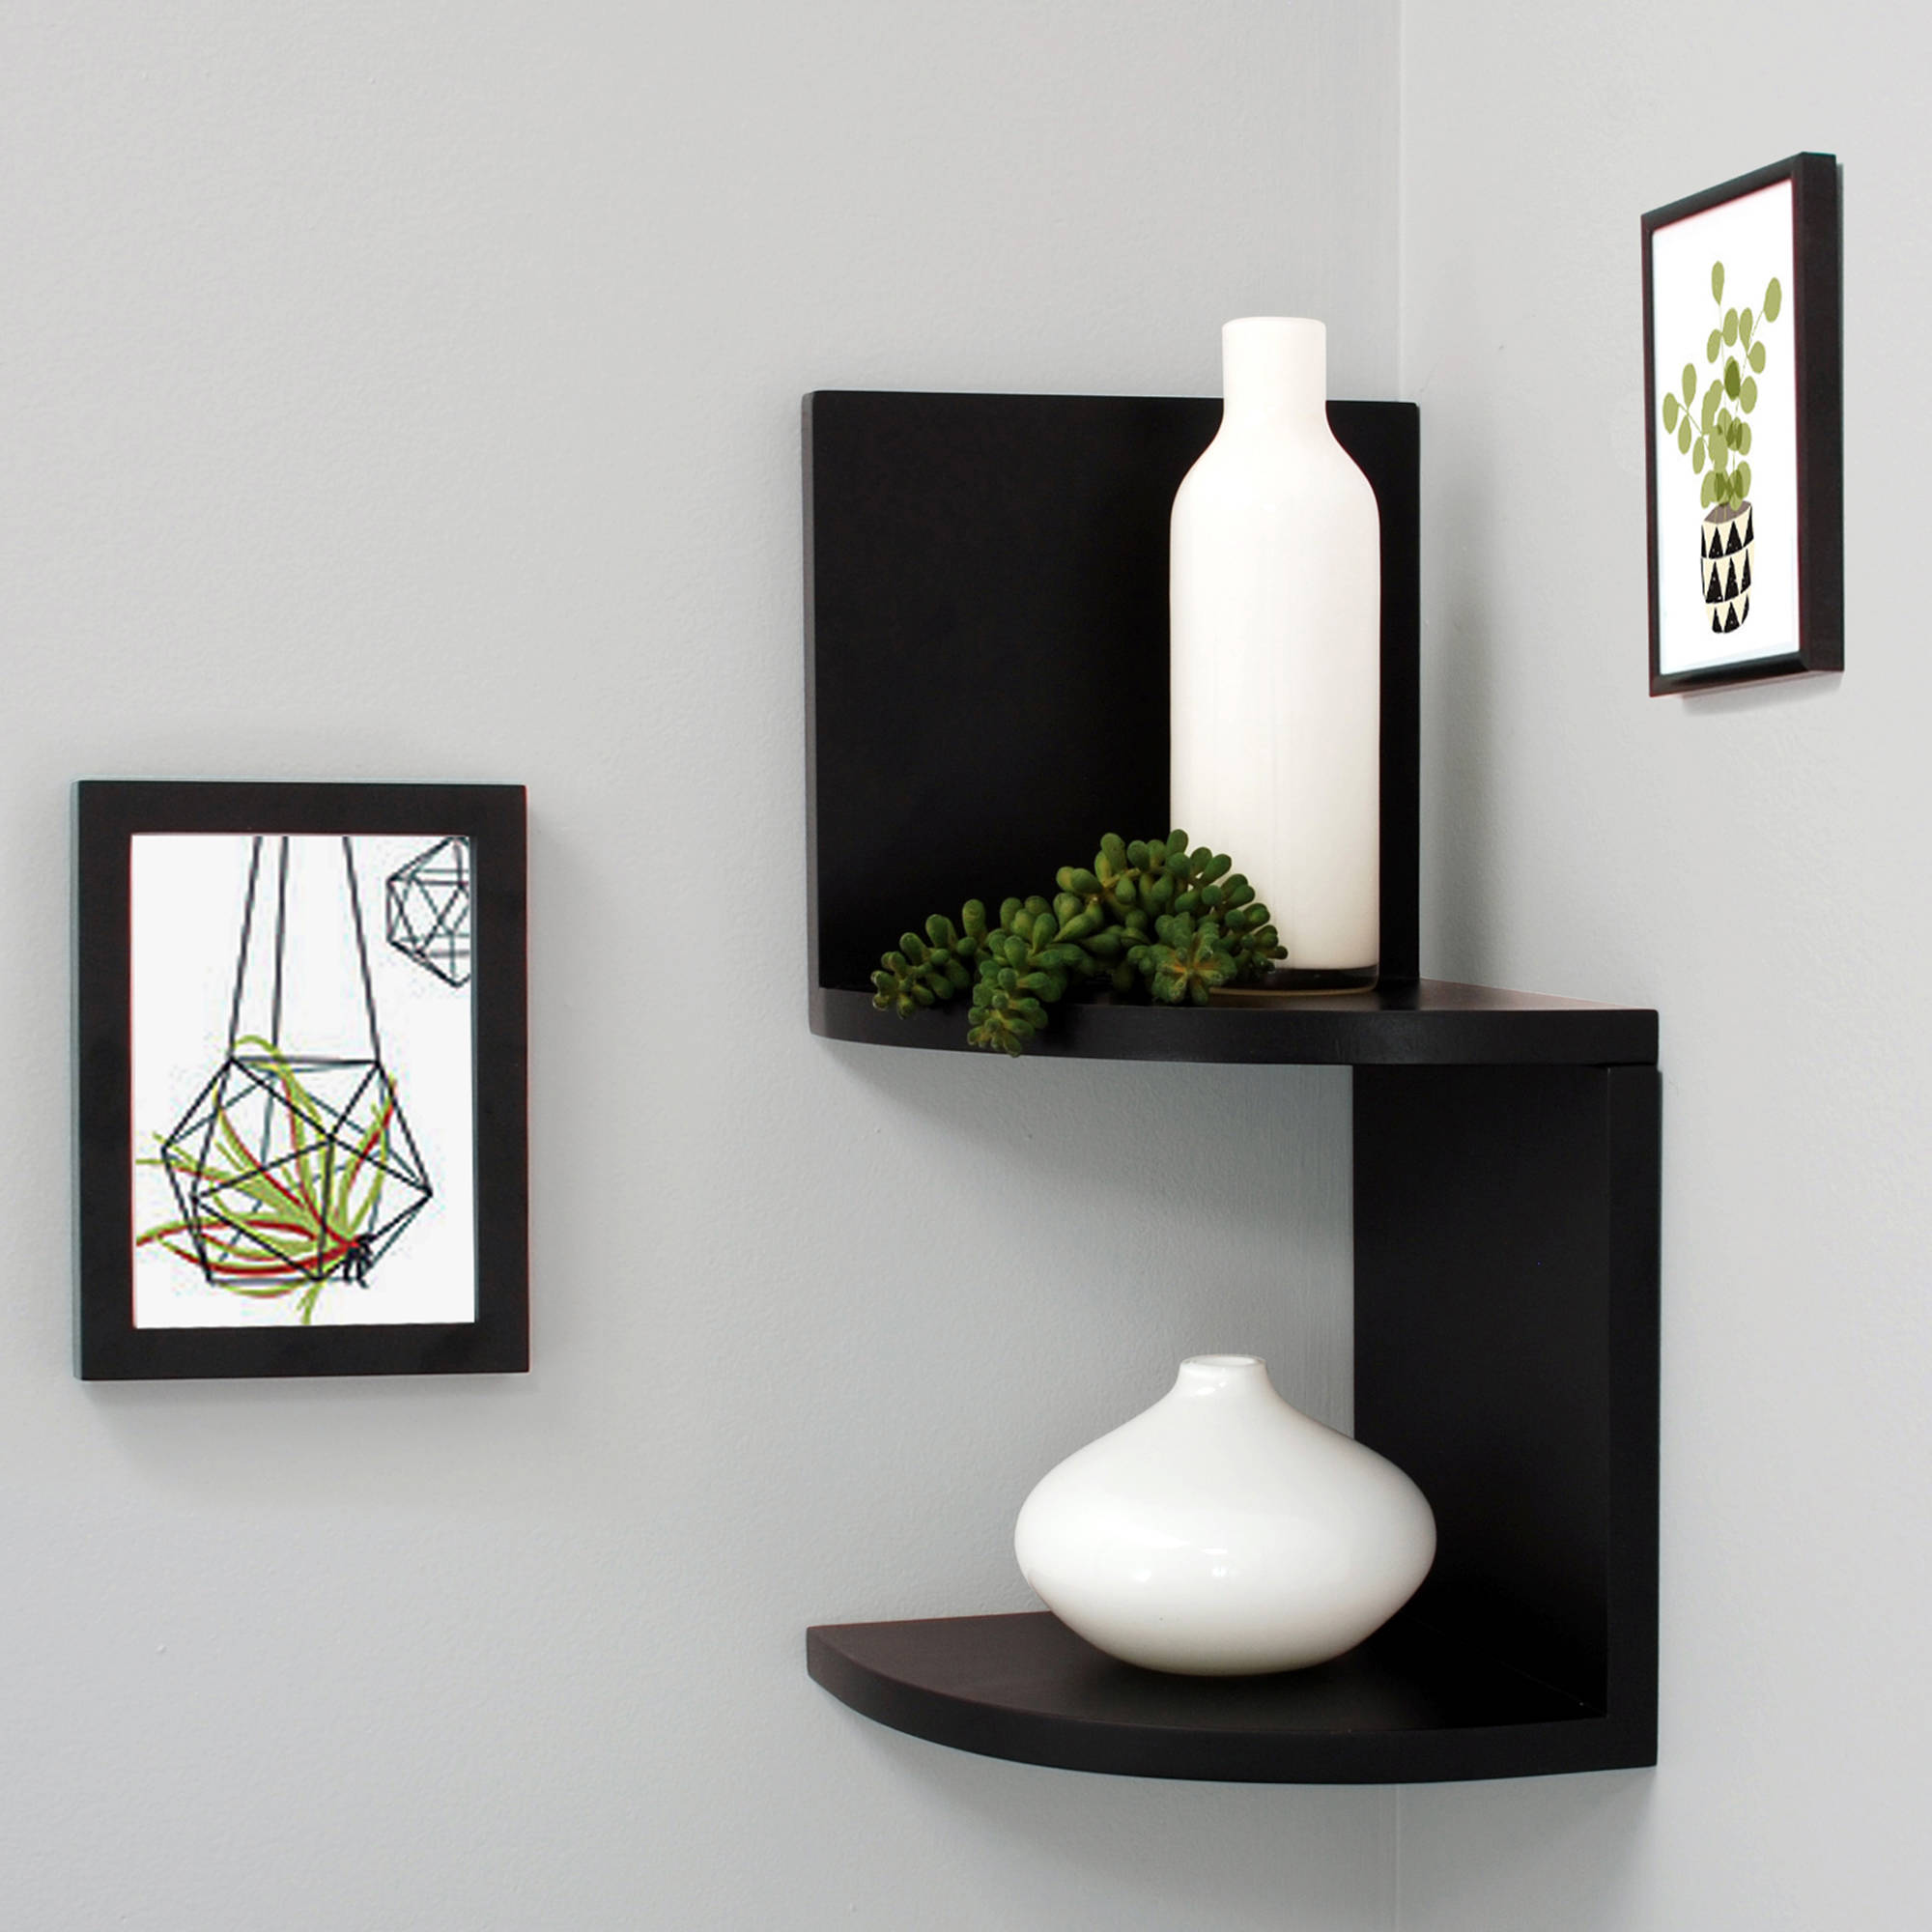 Floating Wall Shelves - Corner floating wall shelf hidden bracket wall shelving corner wall